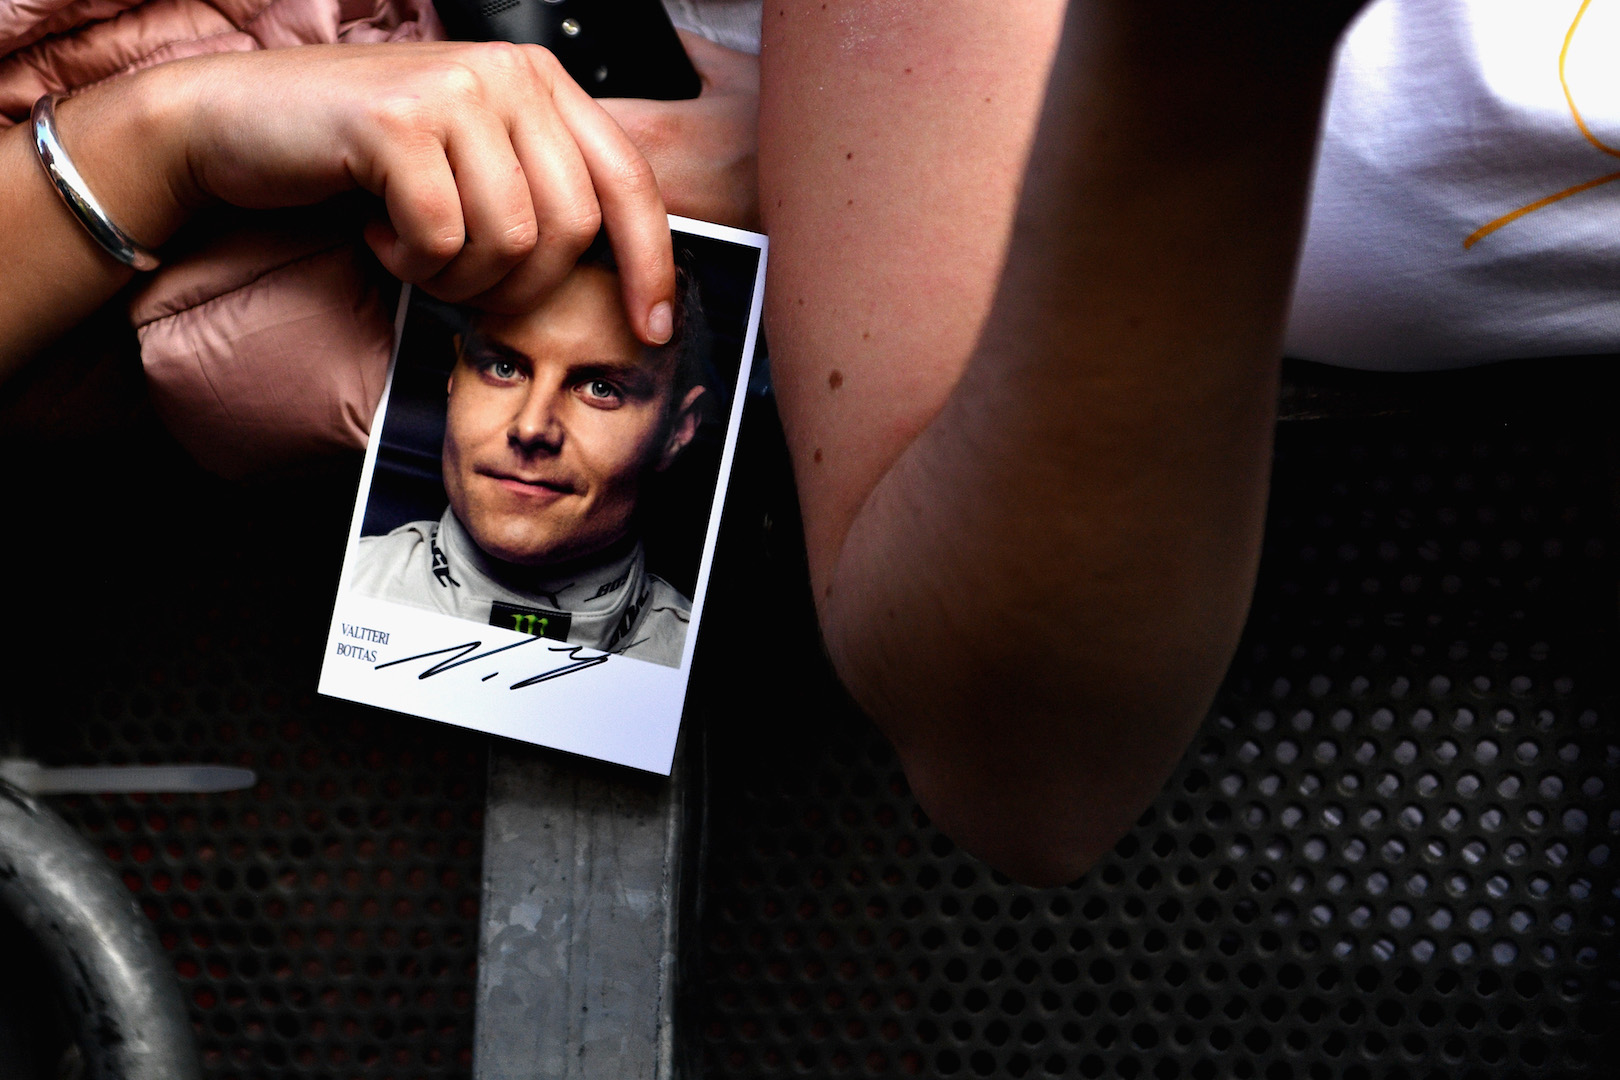 MONTMELO, SPAIN - MAY 11: Fans wait for Valtteri Bottas of Finland and Mercedes GP at the drivers autograph signing session during previews for the Spanish Formula One Grand Prix at Circuit de Catalunya on May 11, 2017 in Montmelo, Spain. (Photo by David Ramos/Getty Images)